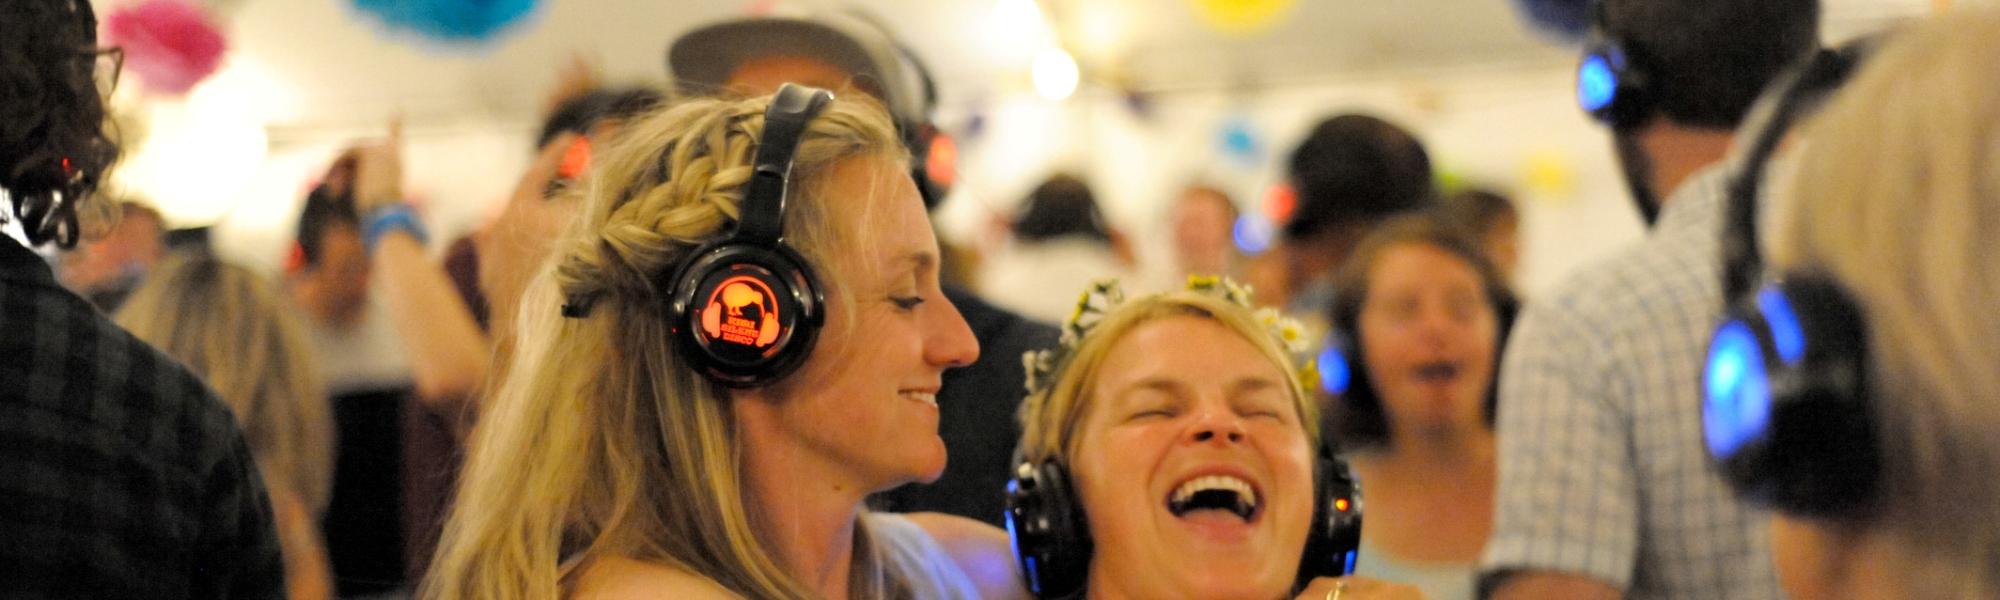 Kiwi Silent Disco | - What is your Silent Disco event going to be?